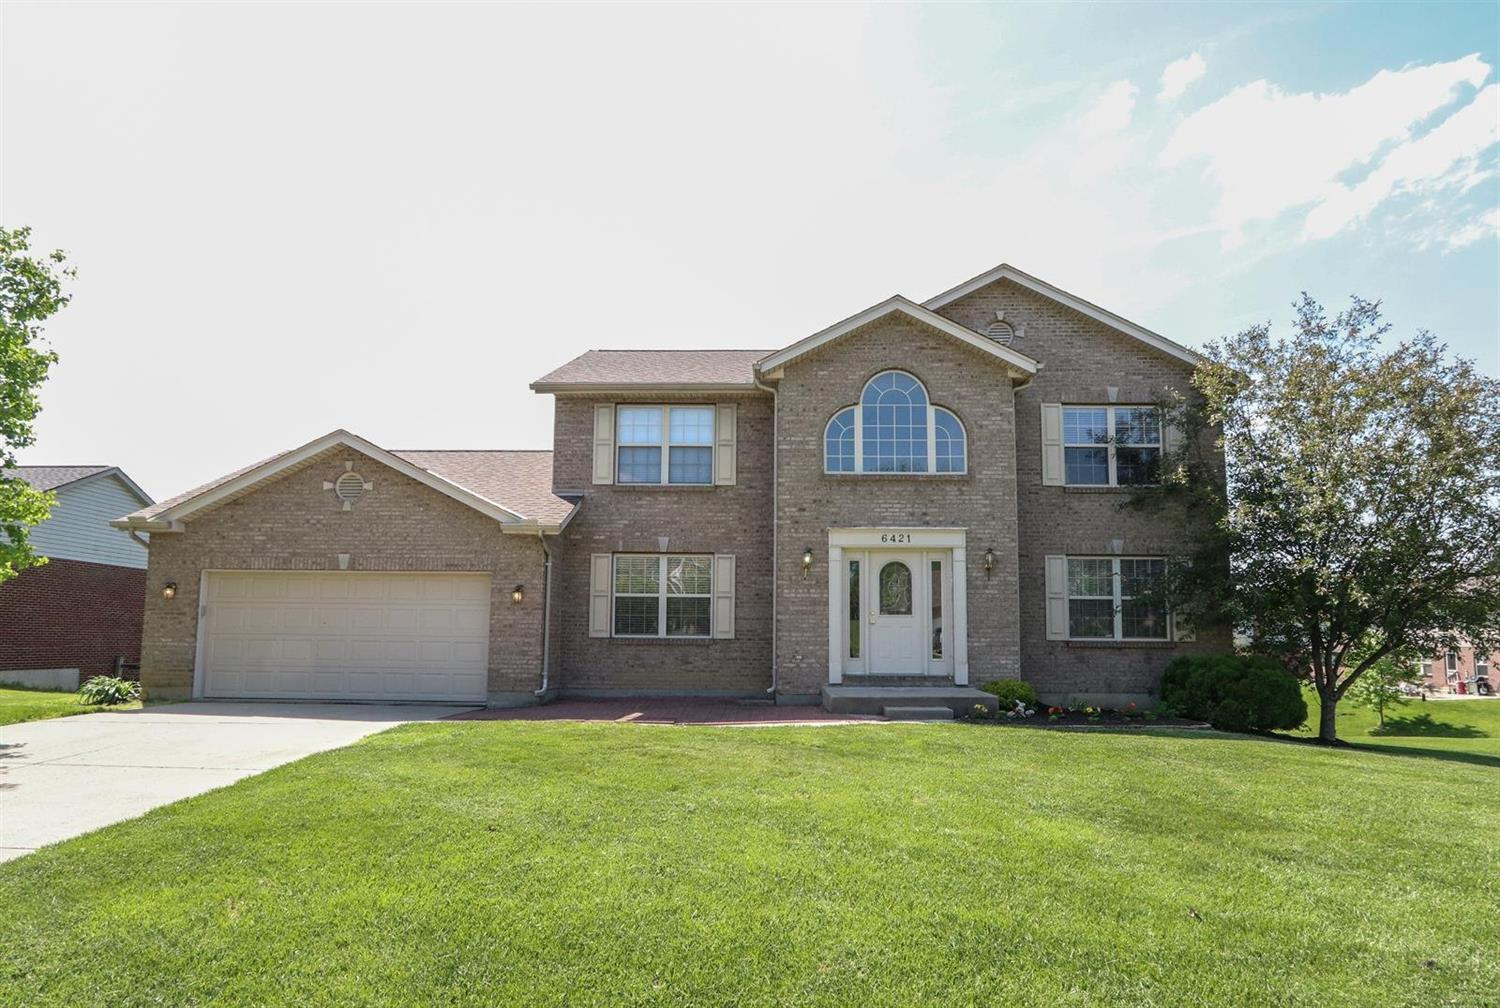 Property for sale at 6421 Kingsley Court, Liberty Twp,  Ohio 45011